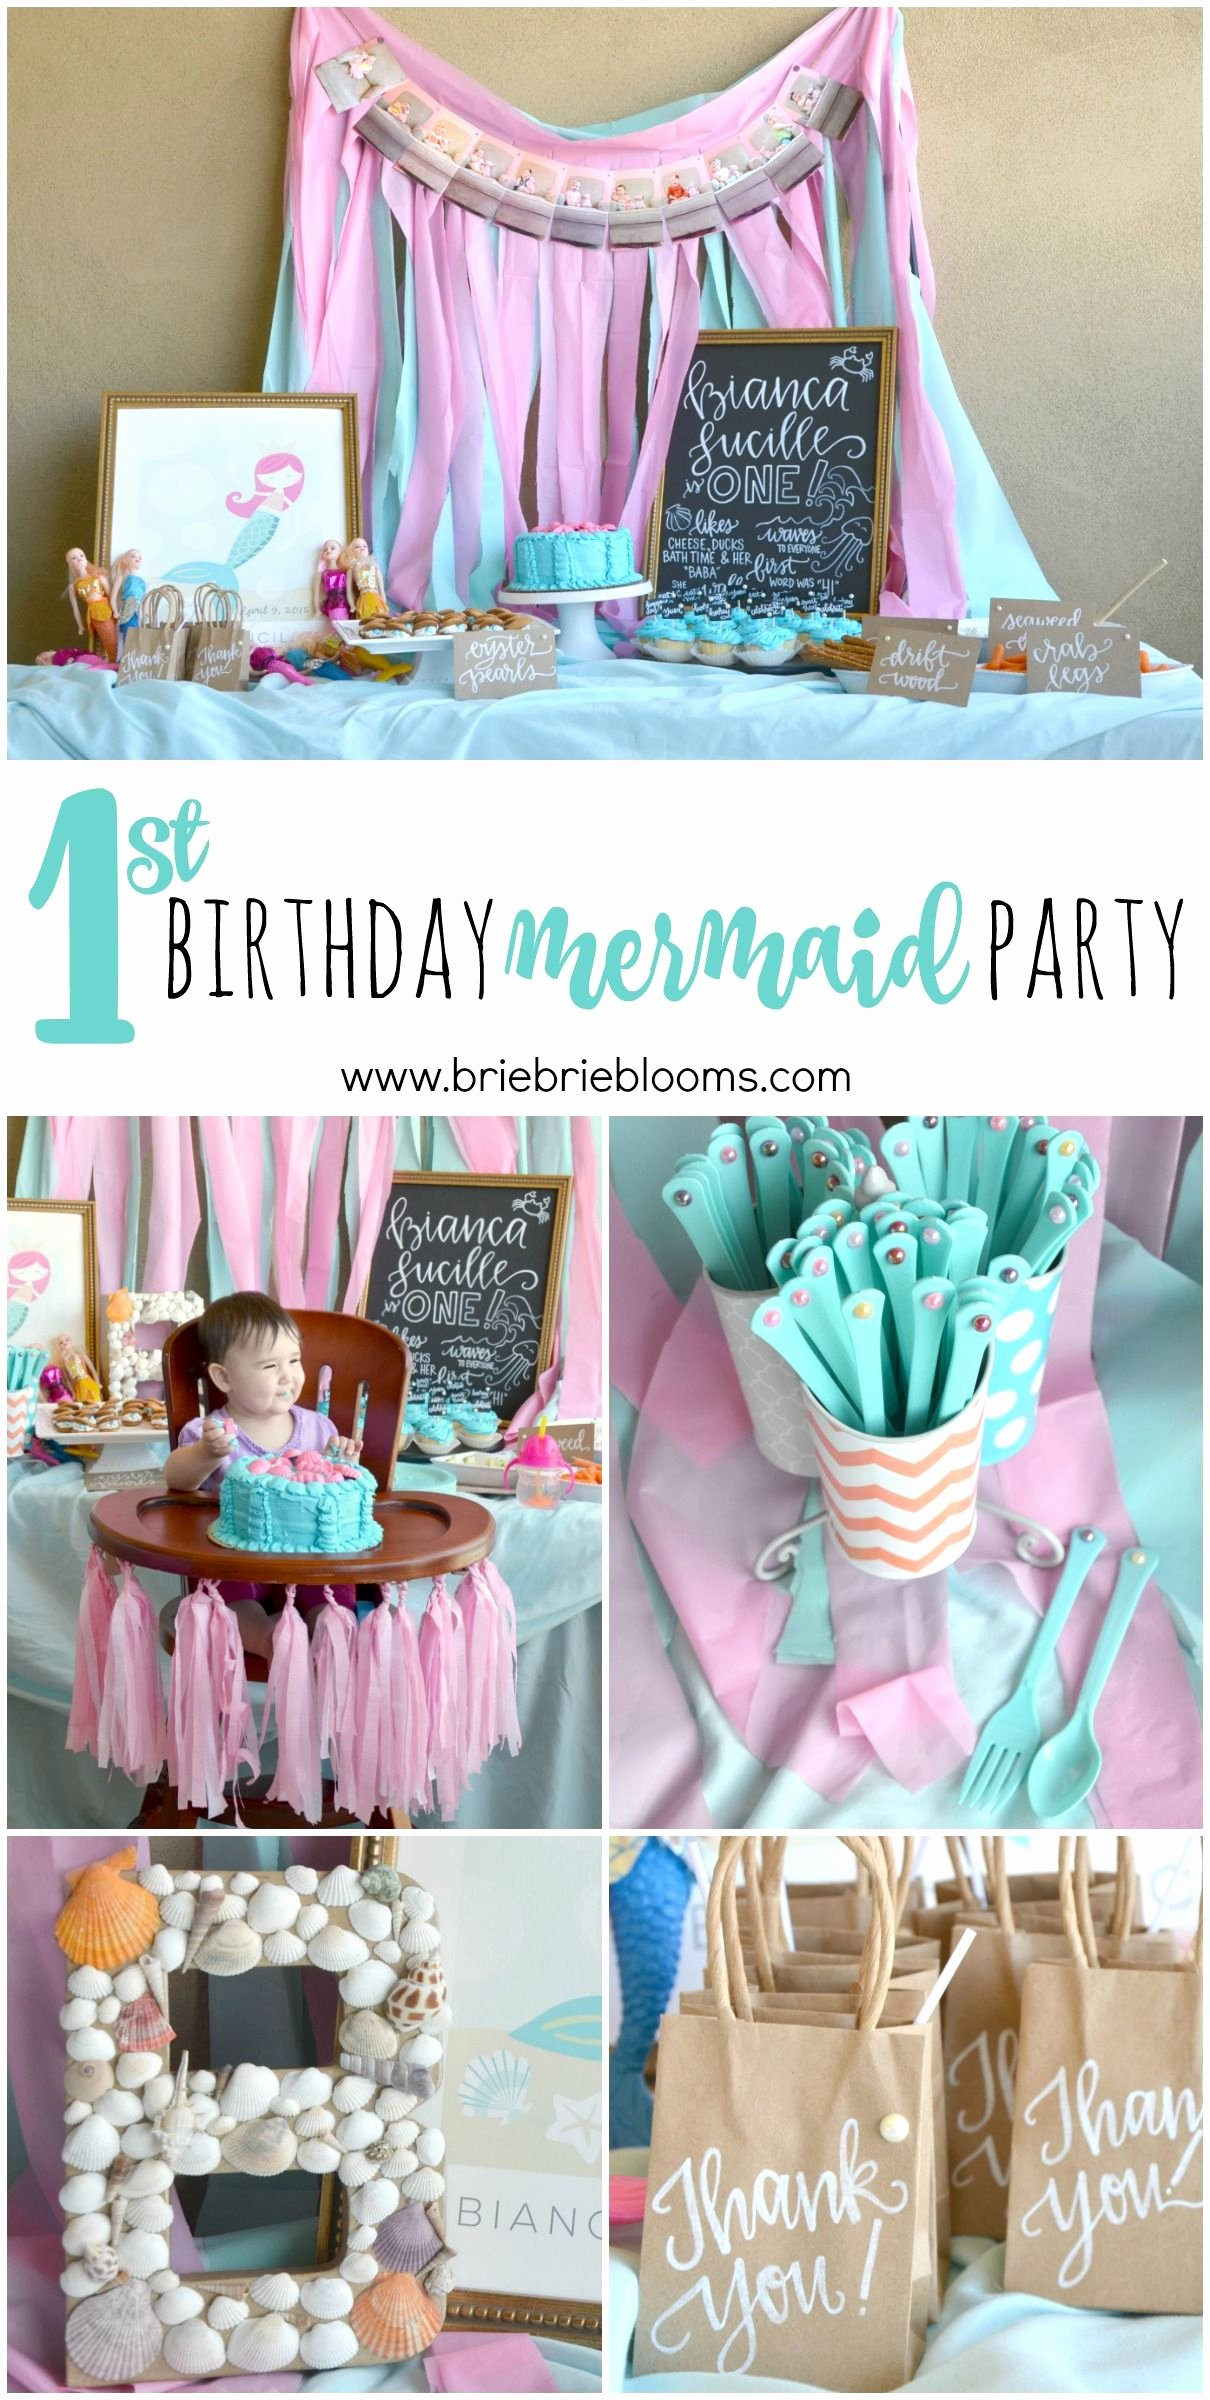 Baby 1st Birthday Decoration Ideas Elegant This First Birthday Mermaid Party is Beautiful the